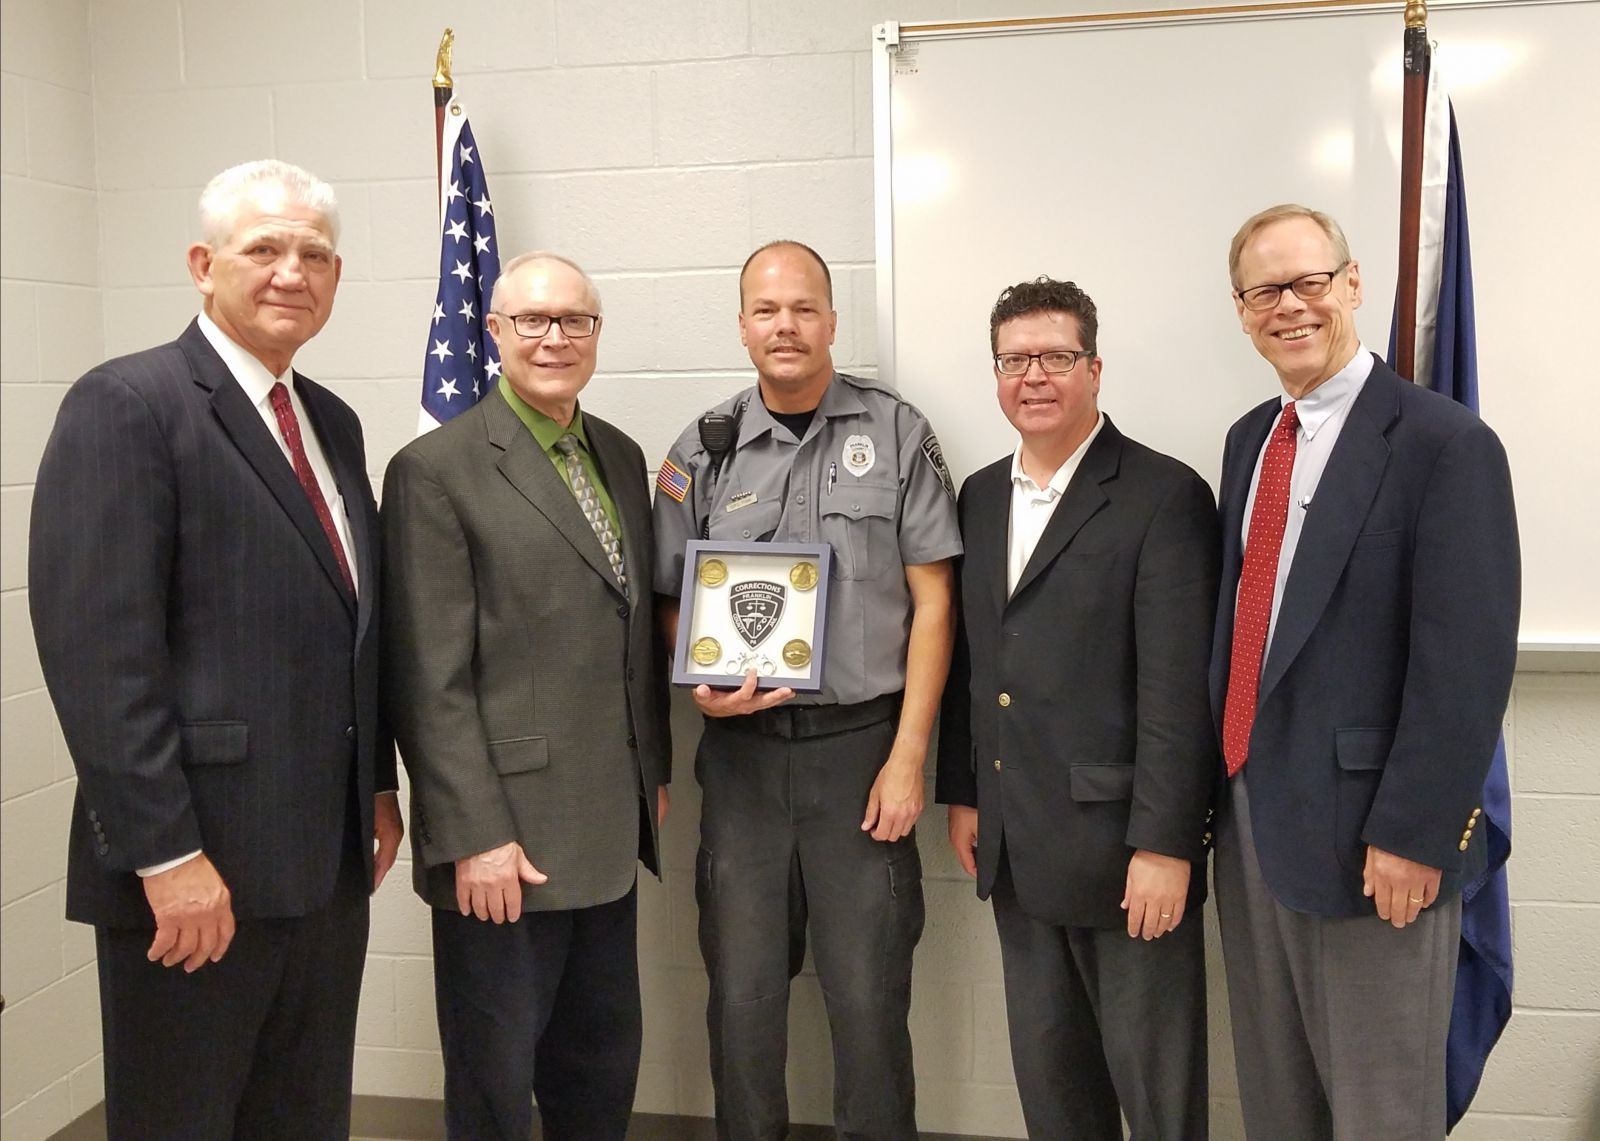 Pictured above, left to right: Former County Administrator John Hart, Commissioner Bob Thomas, Correctional Officer of the Year Robert Fink, Commissioner Chairman Dave Keller, Commissioner Bob Ziobrowski